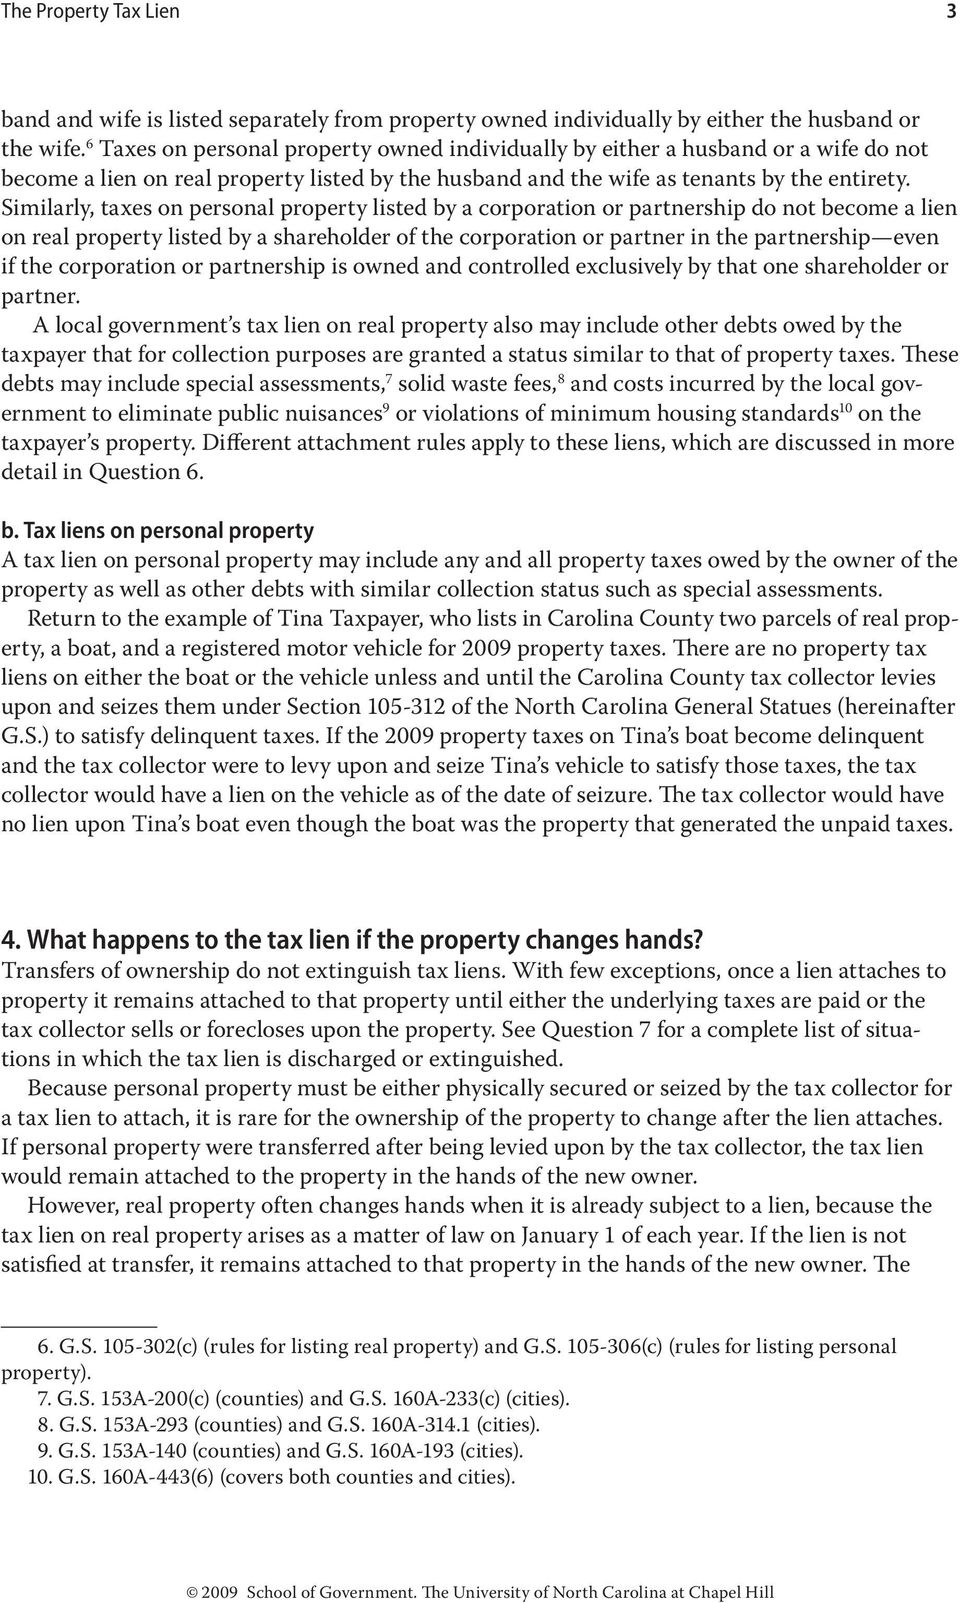 Similarly, taxes on personal property listed by a corporation or partnership do not become a lien on real property listed by a shareholder of the corporation or partner in the partnership even if the